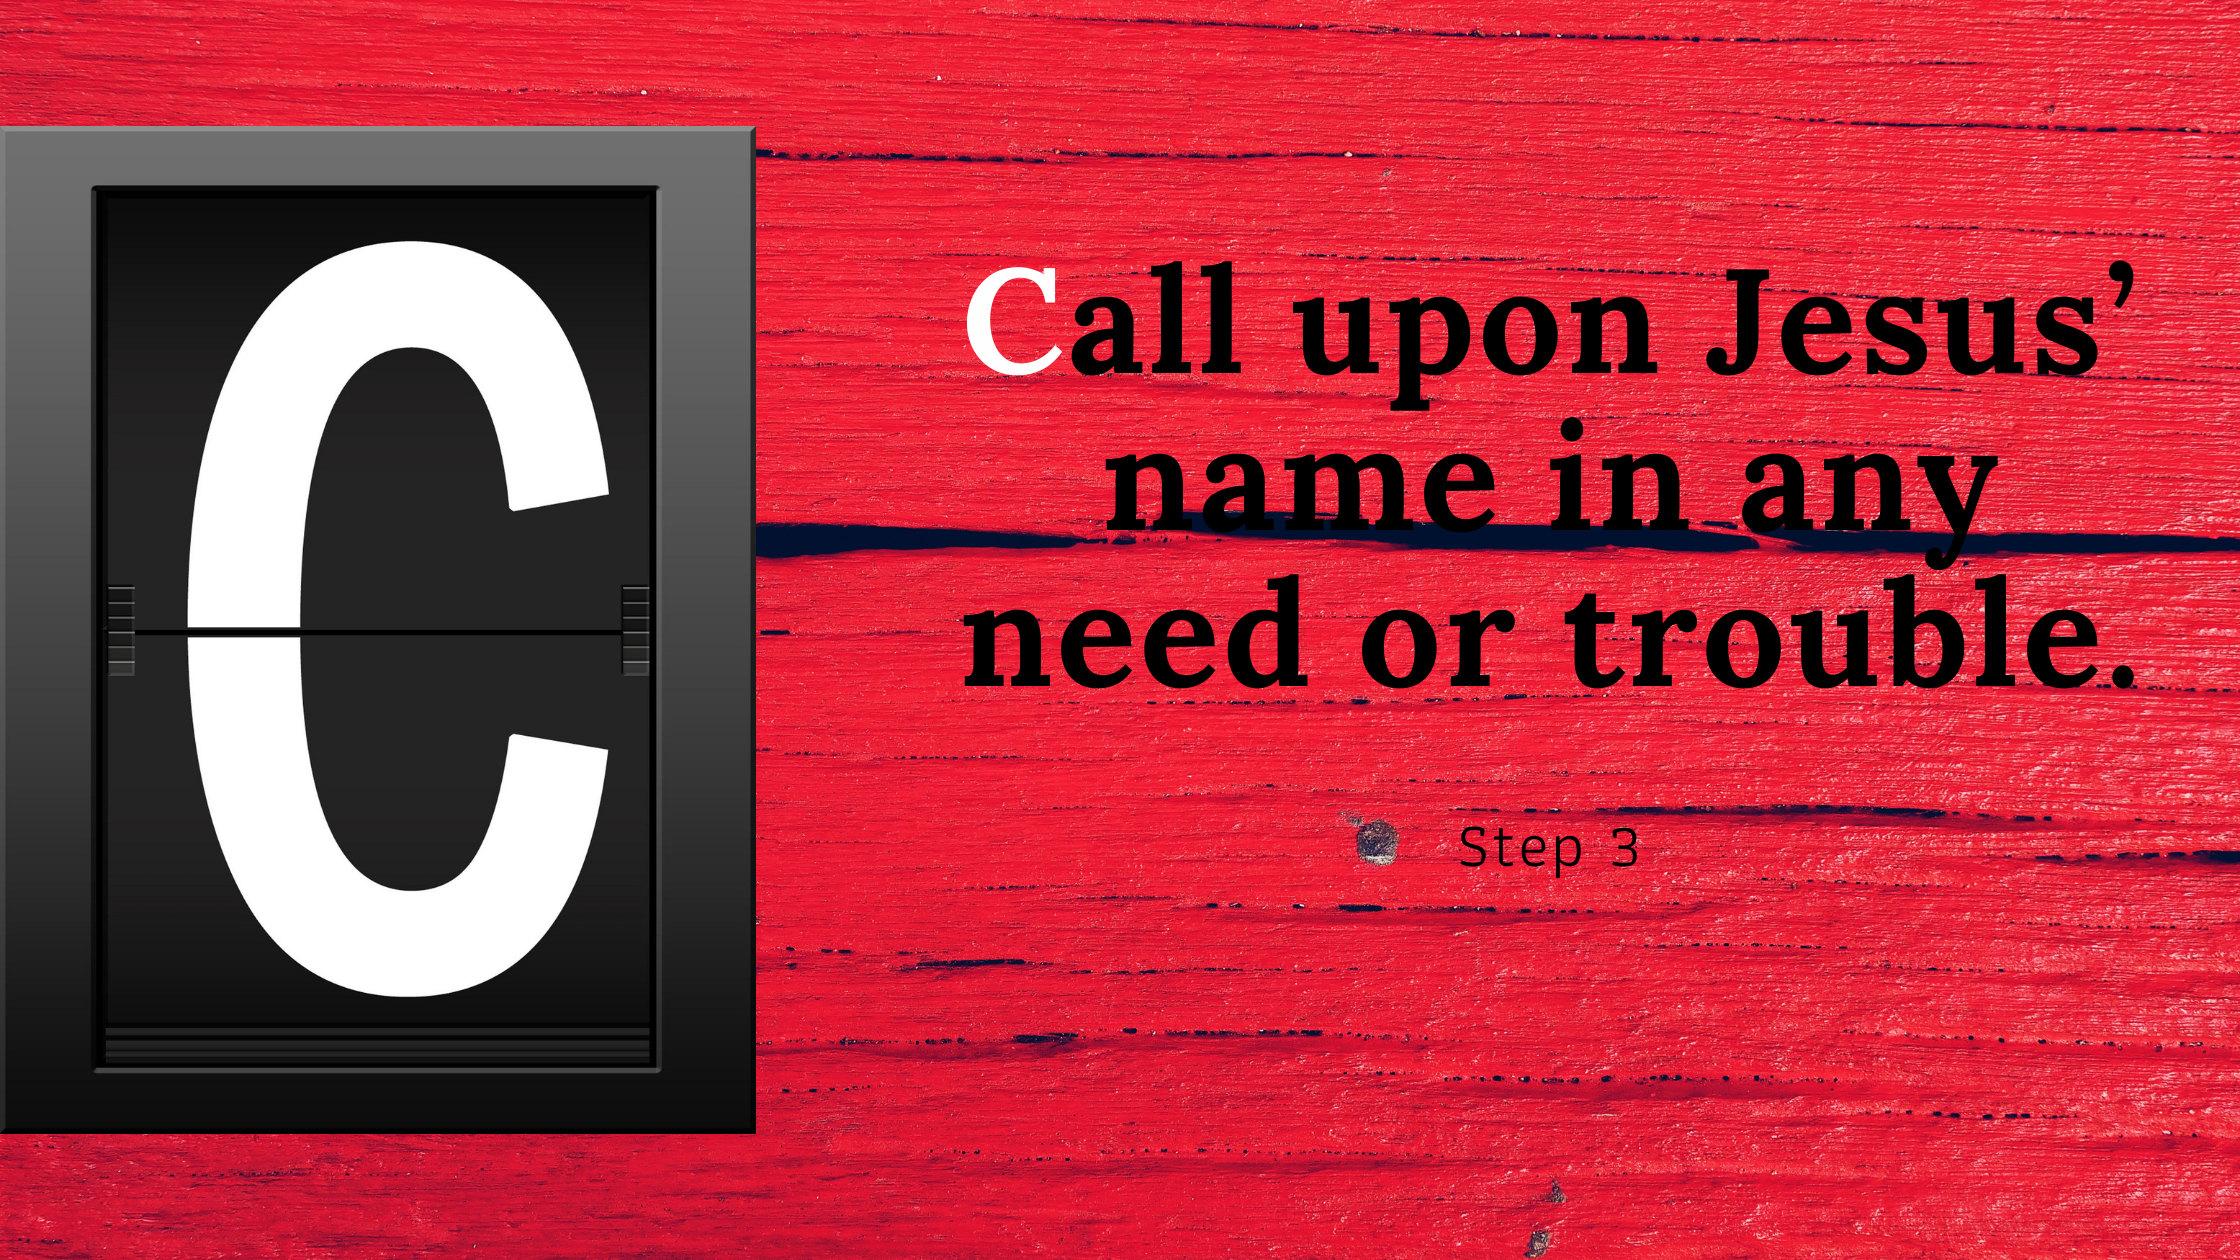 Call on Jesus name in any need or trouble